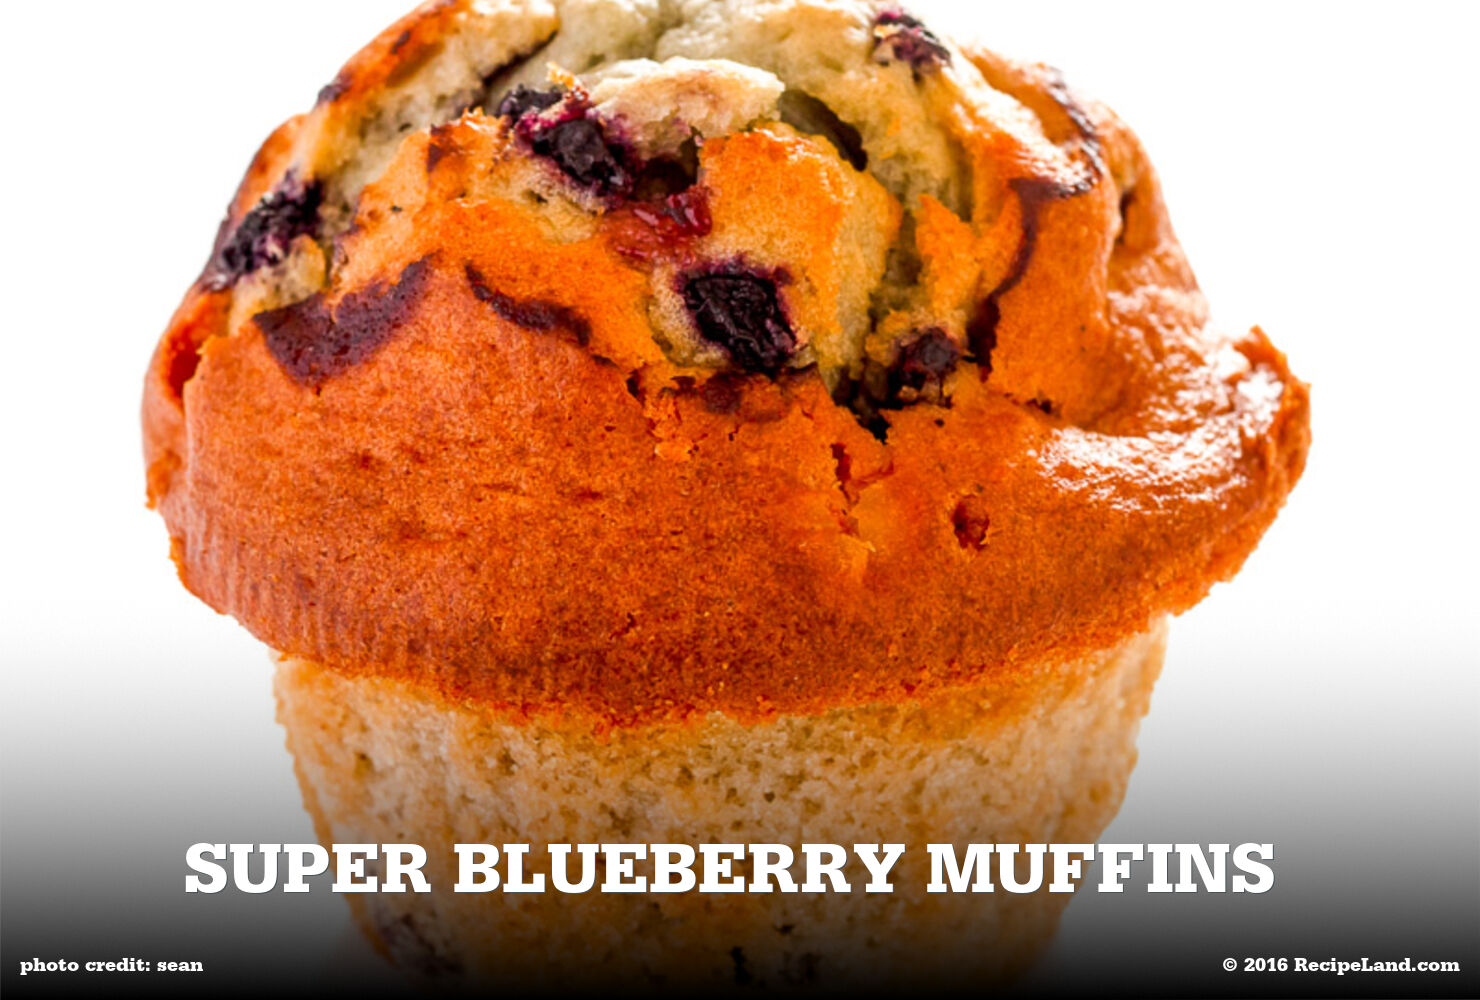 Super Blueberry Muffins